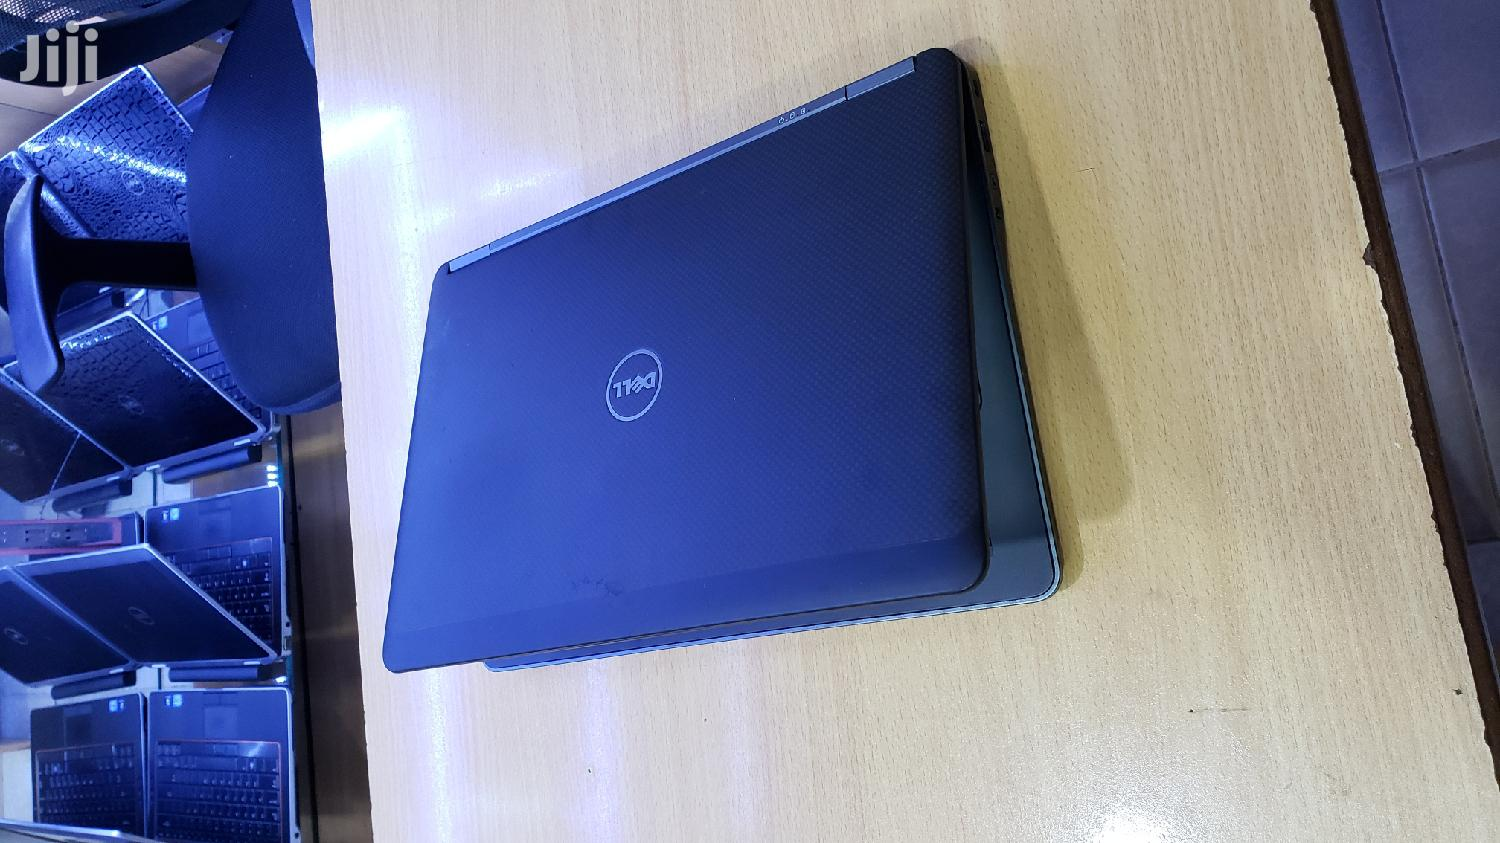 New Laptop Dell Latitude 14 7404 8GB Intel Core I5 SSD 256GB | Laptops & Computers for sale in Kampala, Central Region, Uganda